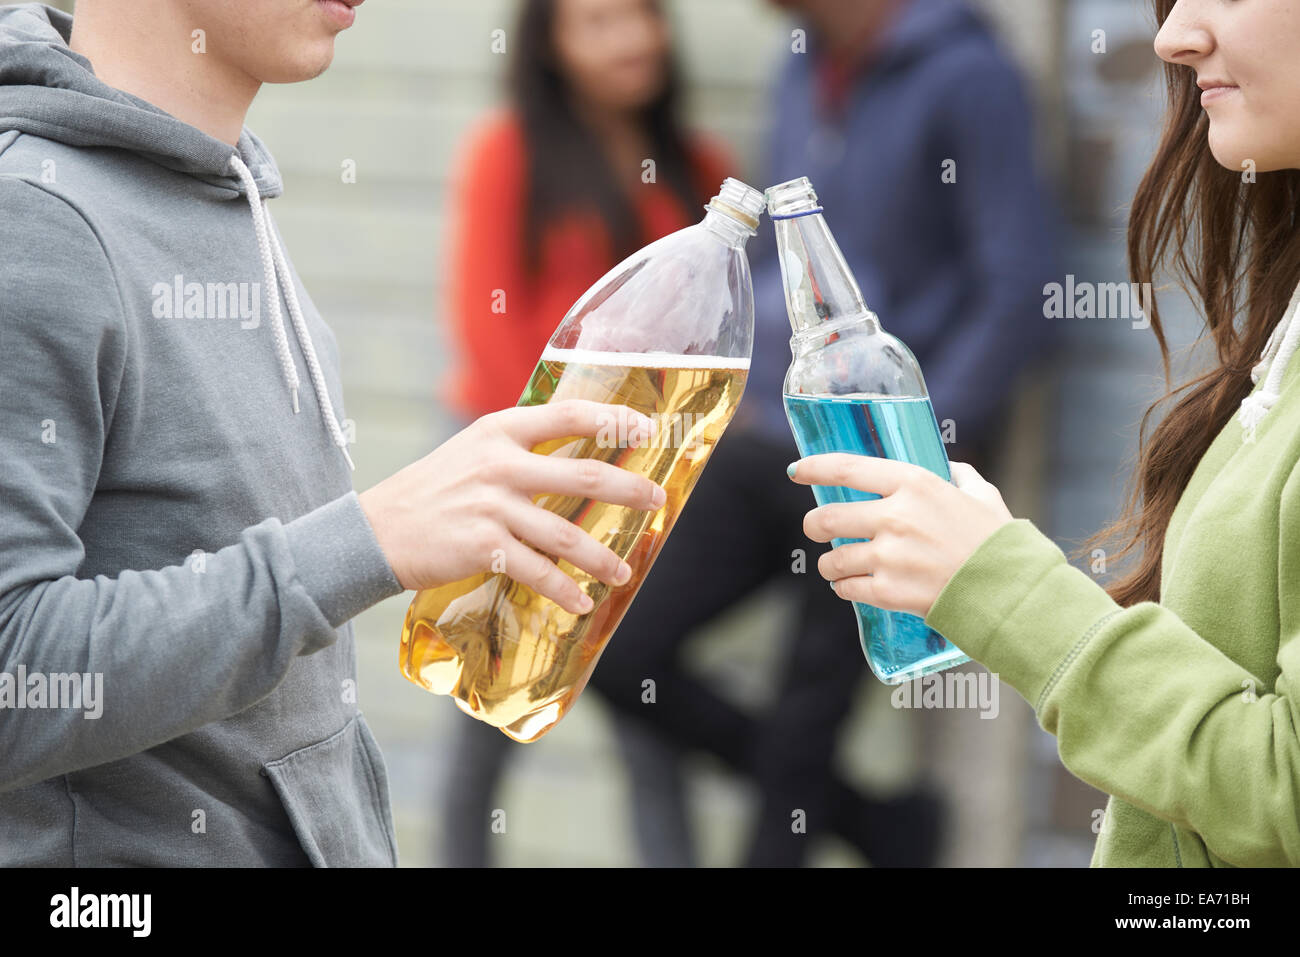 Close Up Of Teenage Group Drinking Alcohol Together - Stock Image